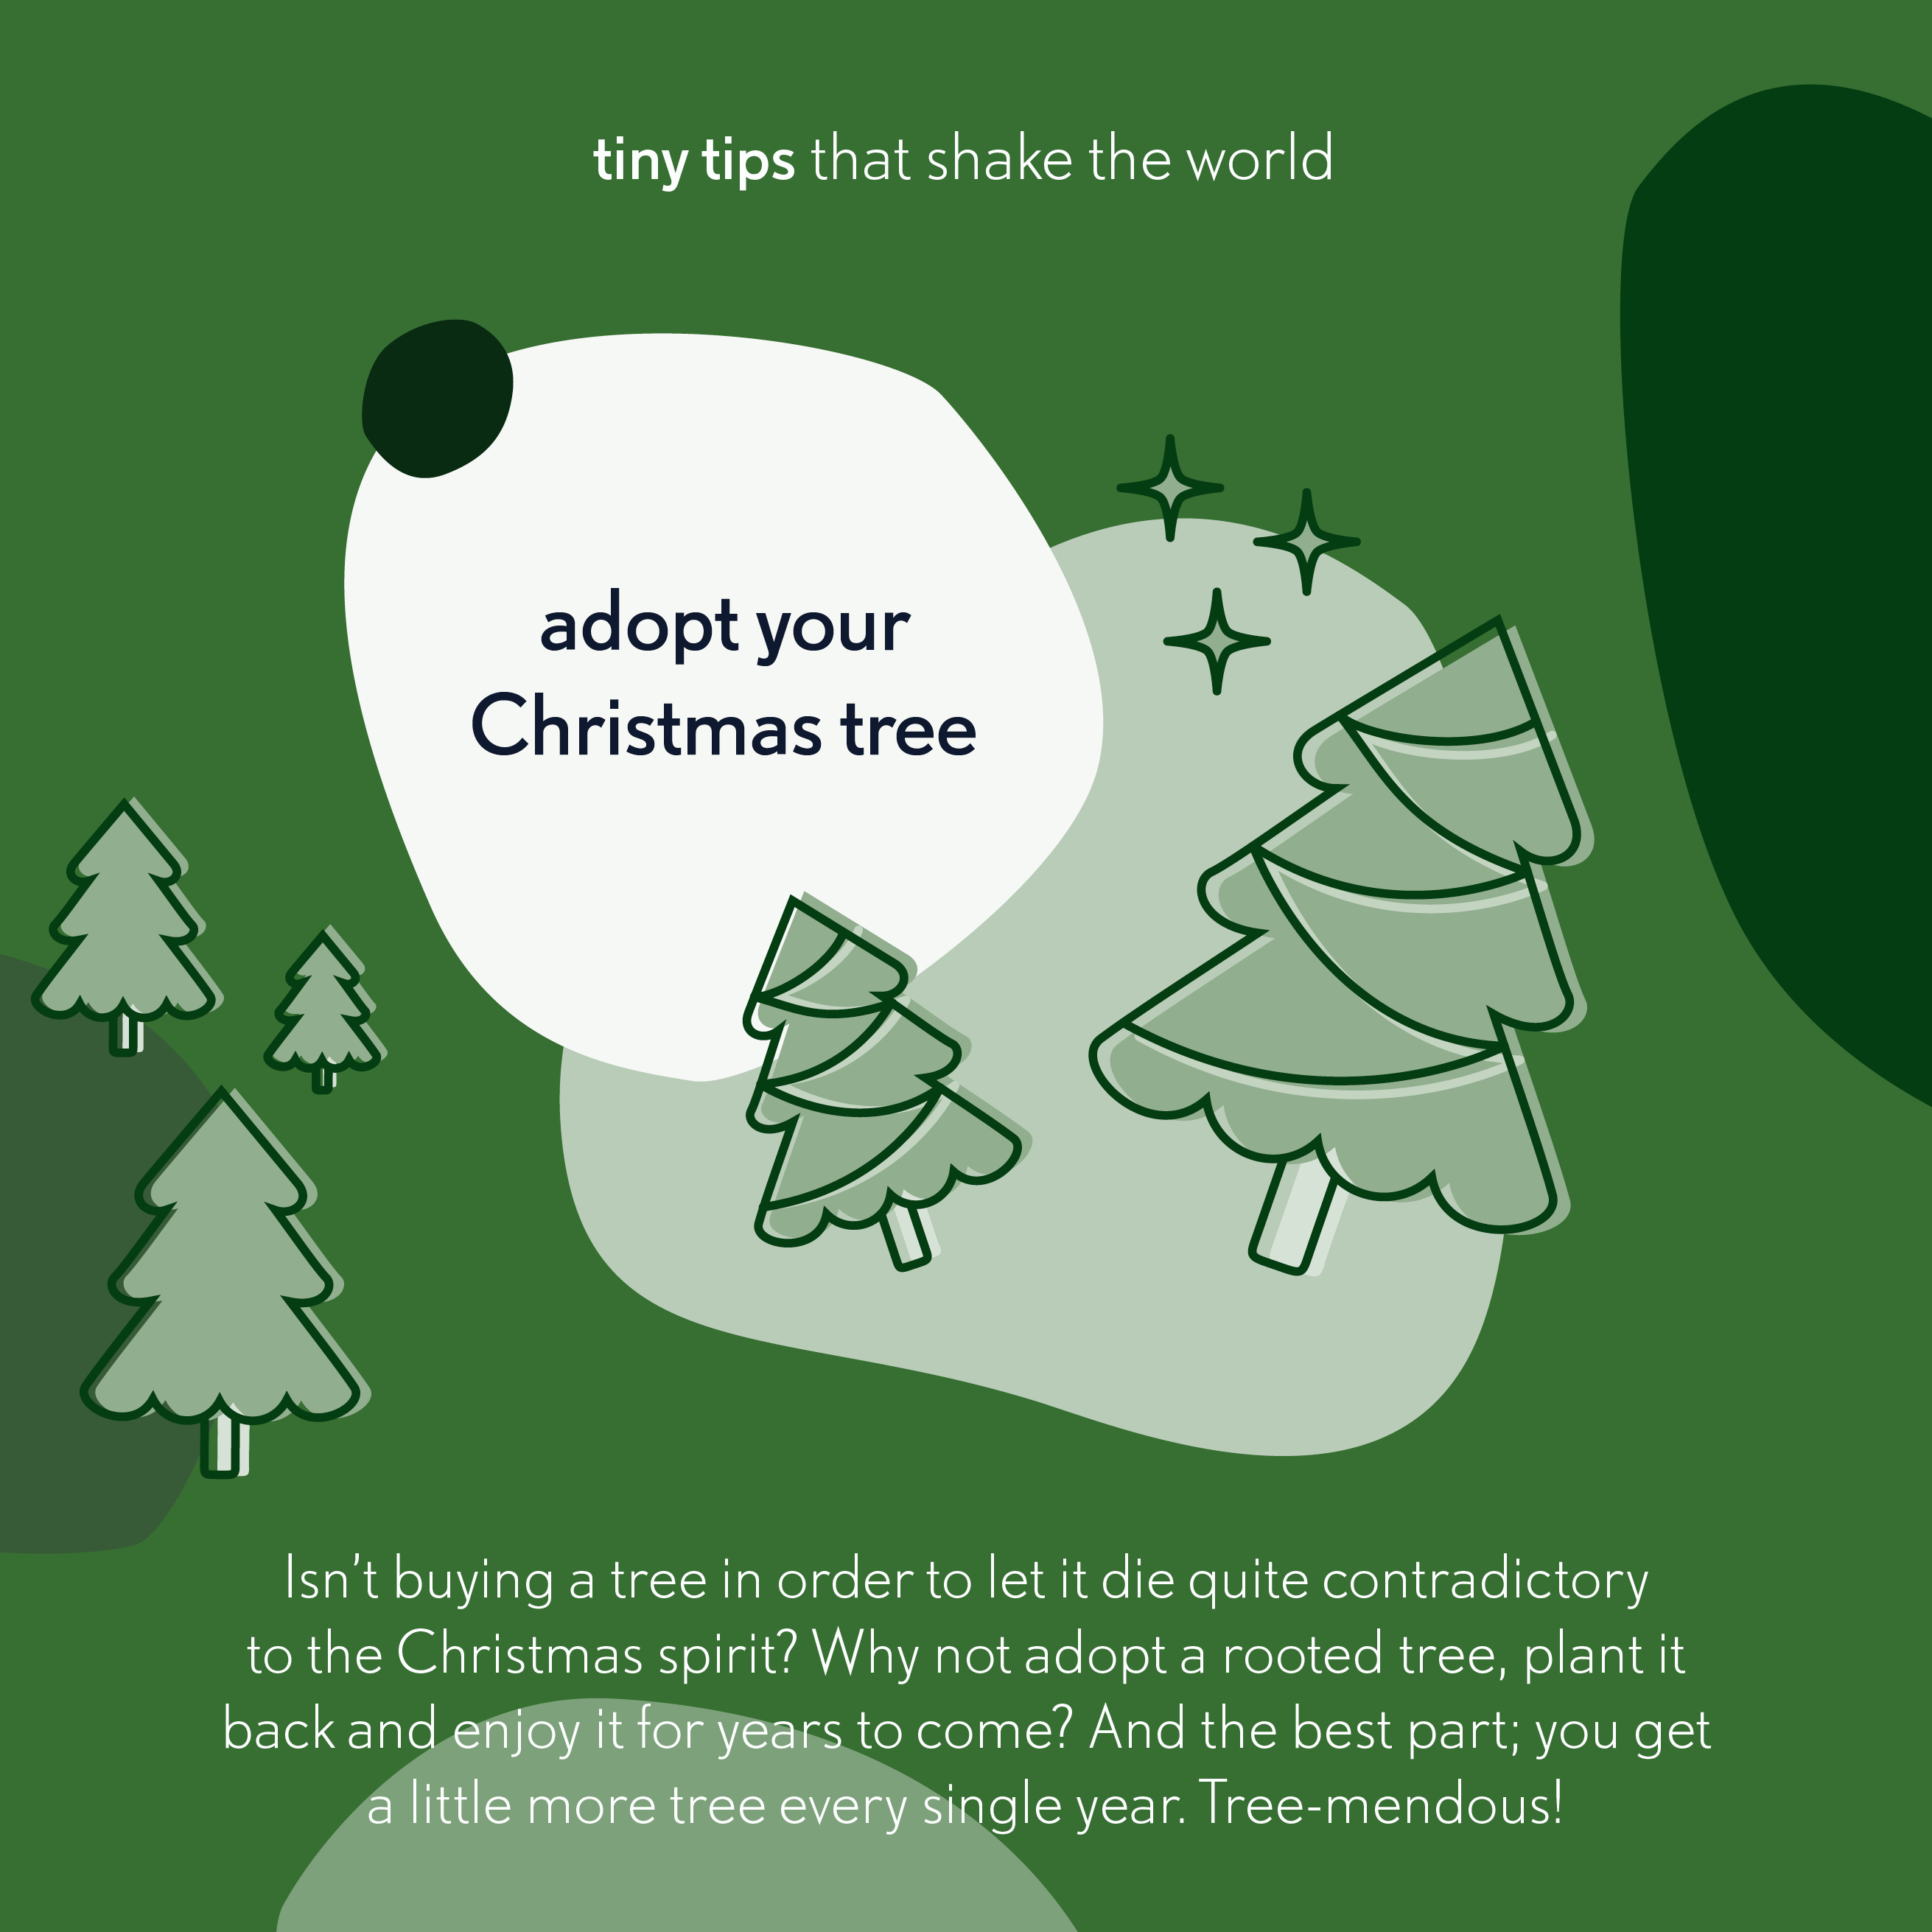 20191204 Adopt your Christmas Tree Tiny tips that shake the world